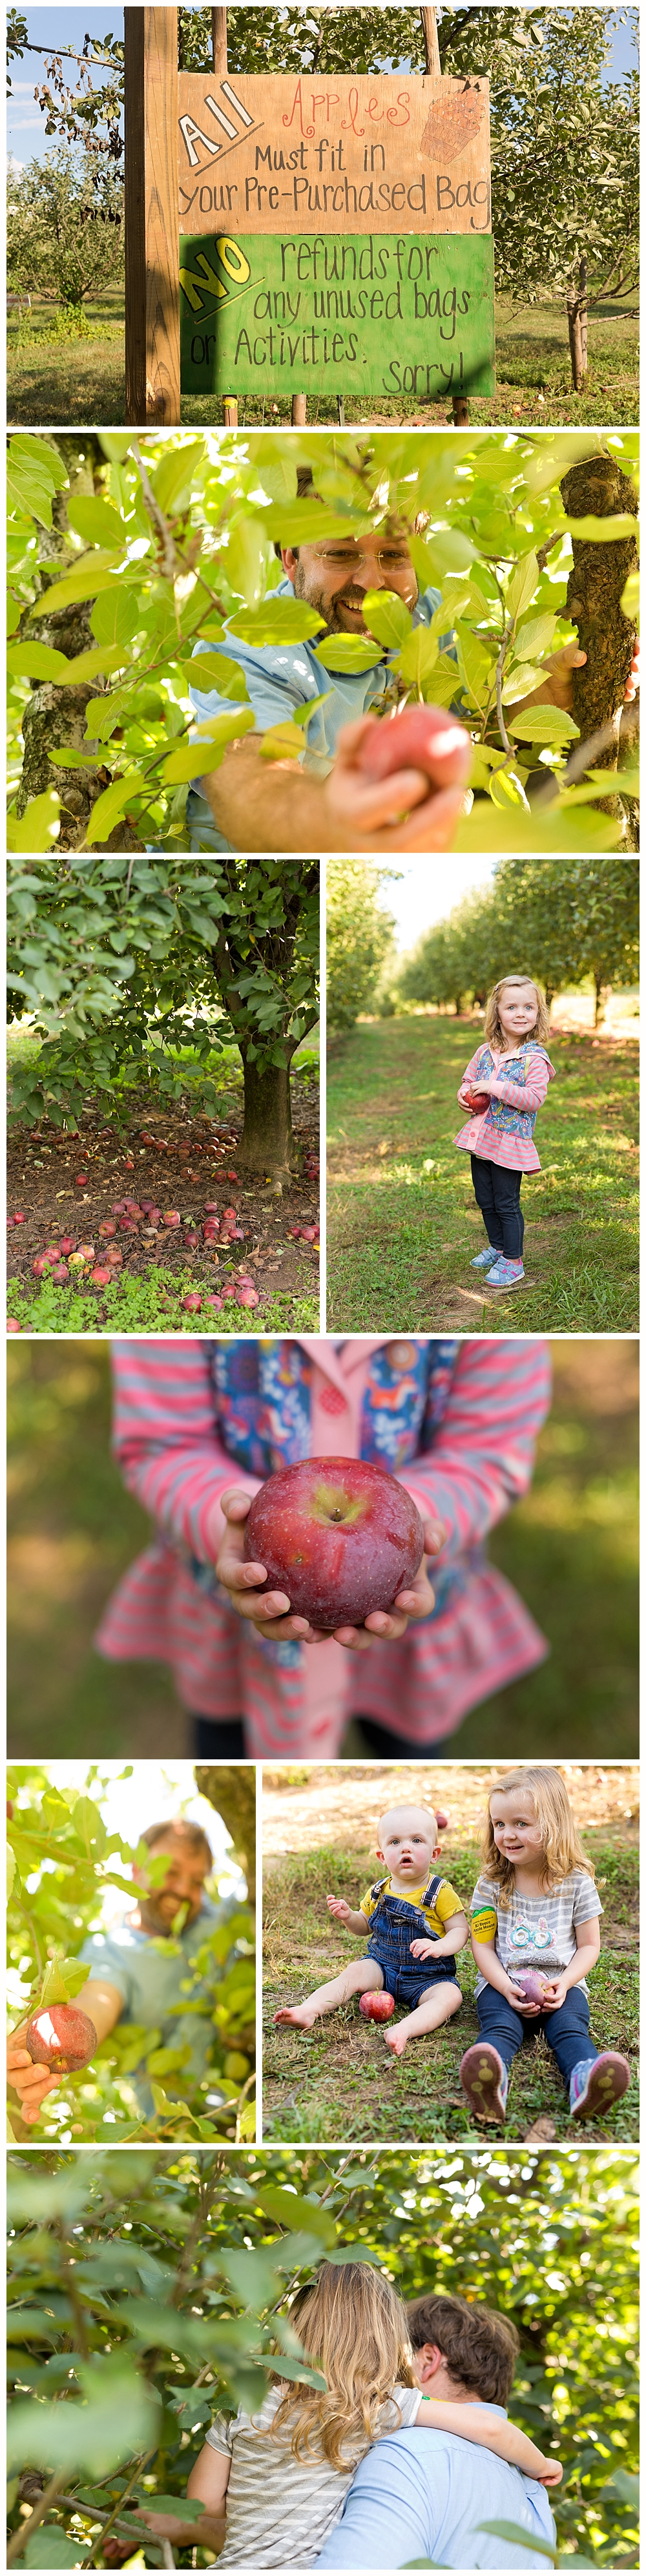 apple-picking at BJ Reece Orchards in Ellijay, Georgia